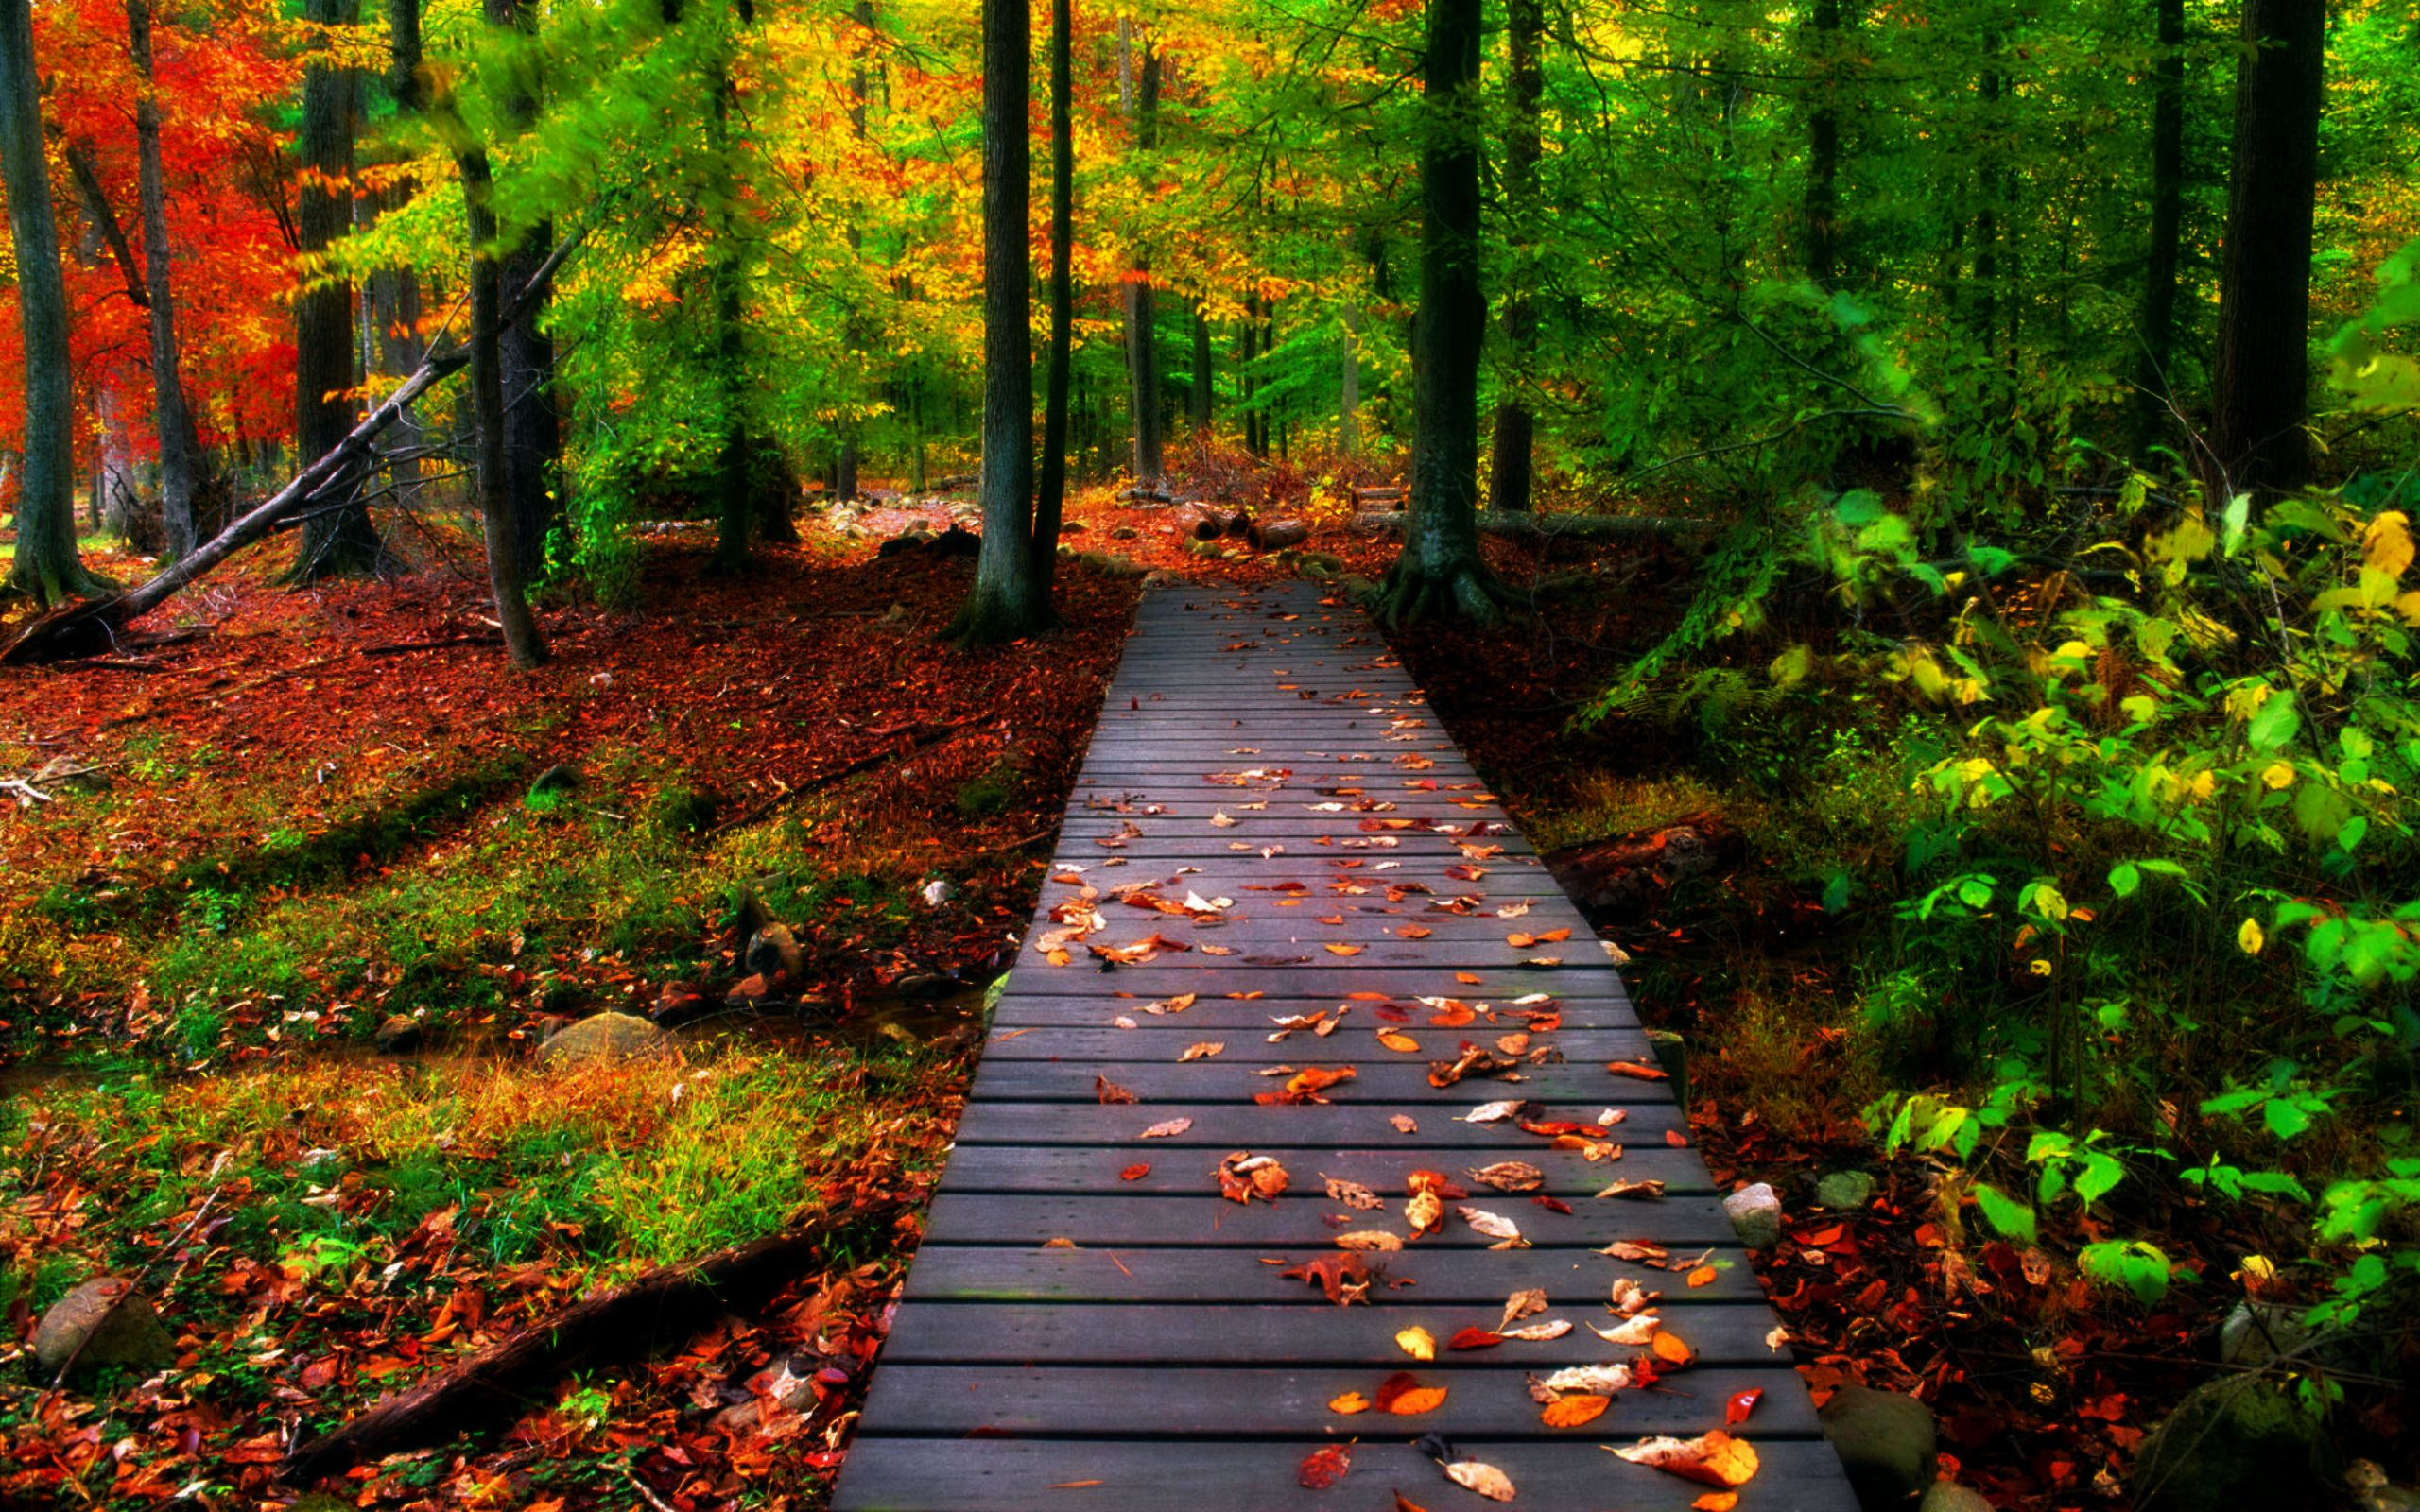 autumn scenery wooden bridge and stairs in the forest hd